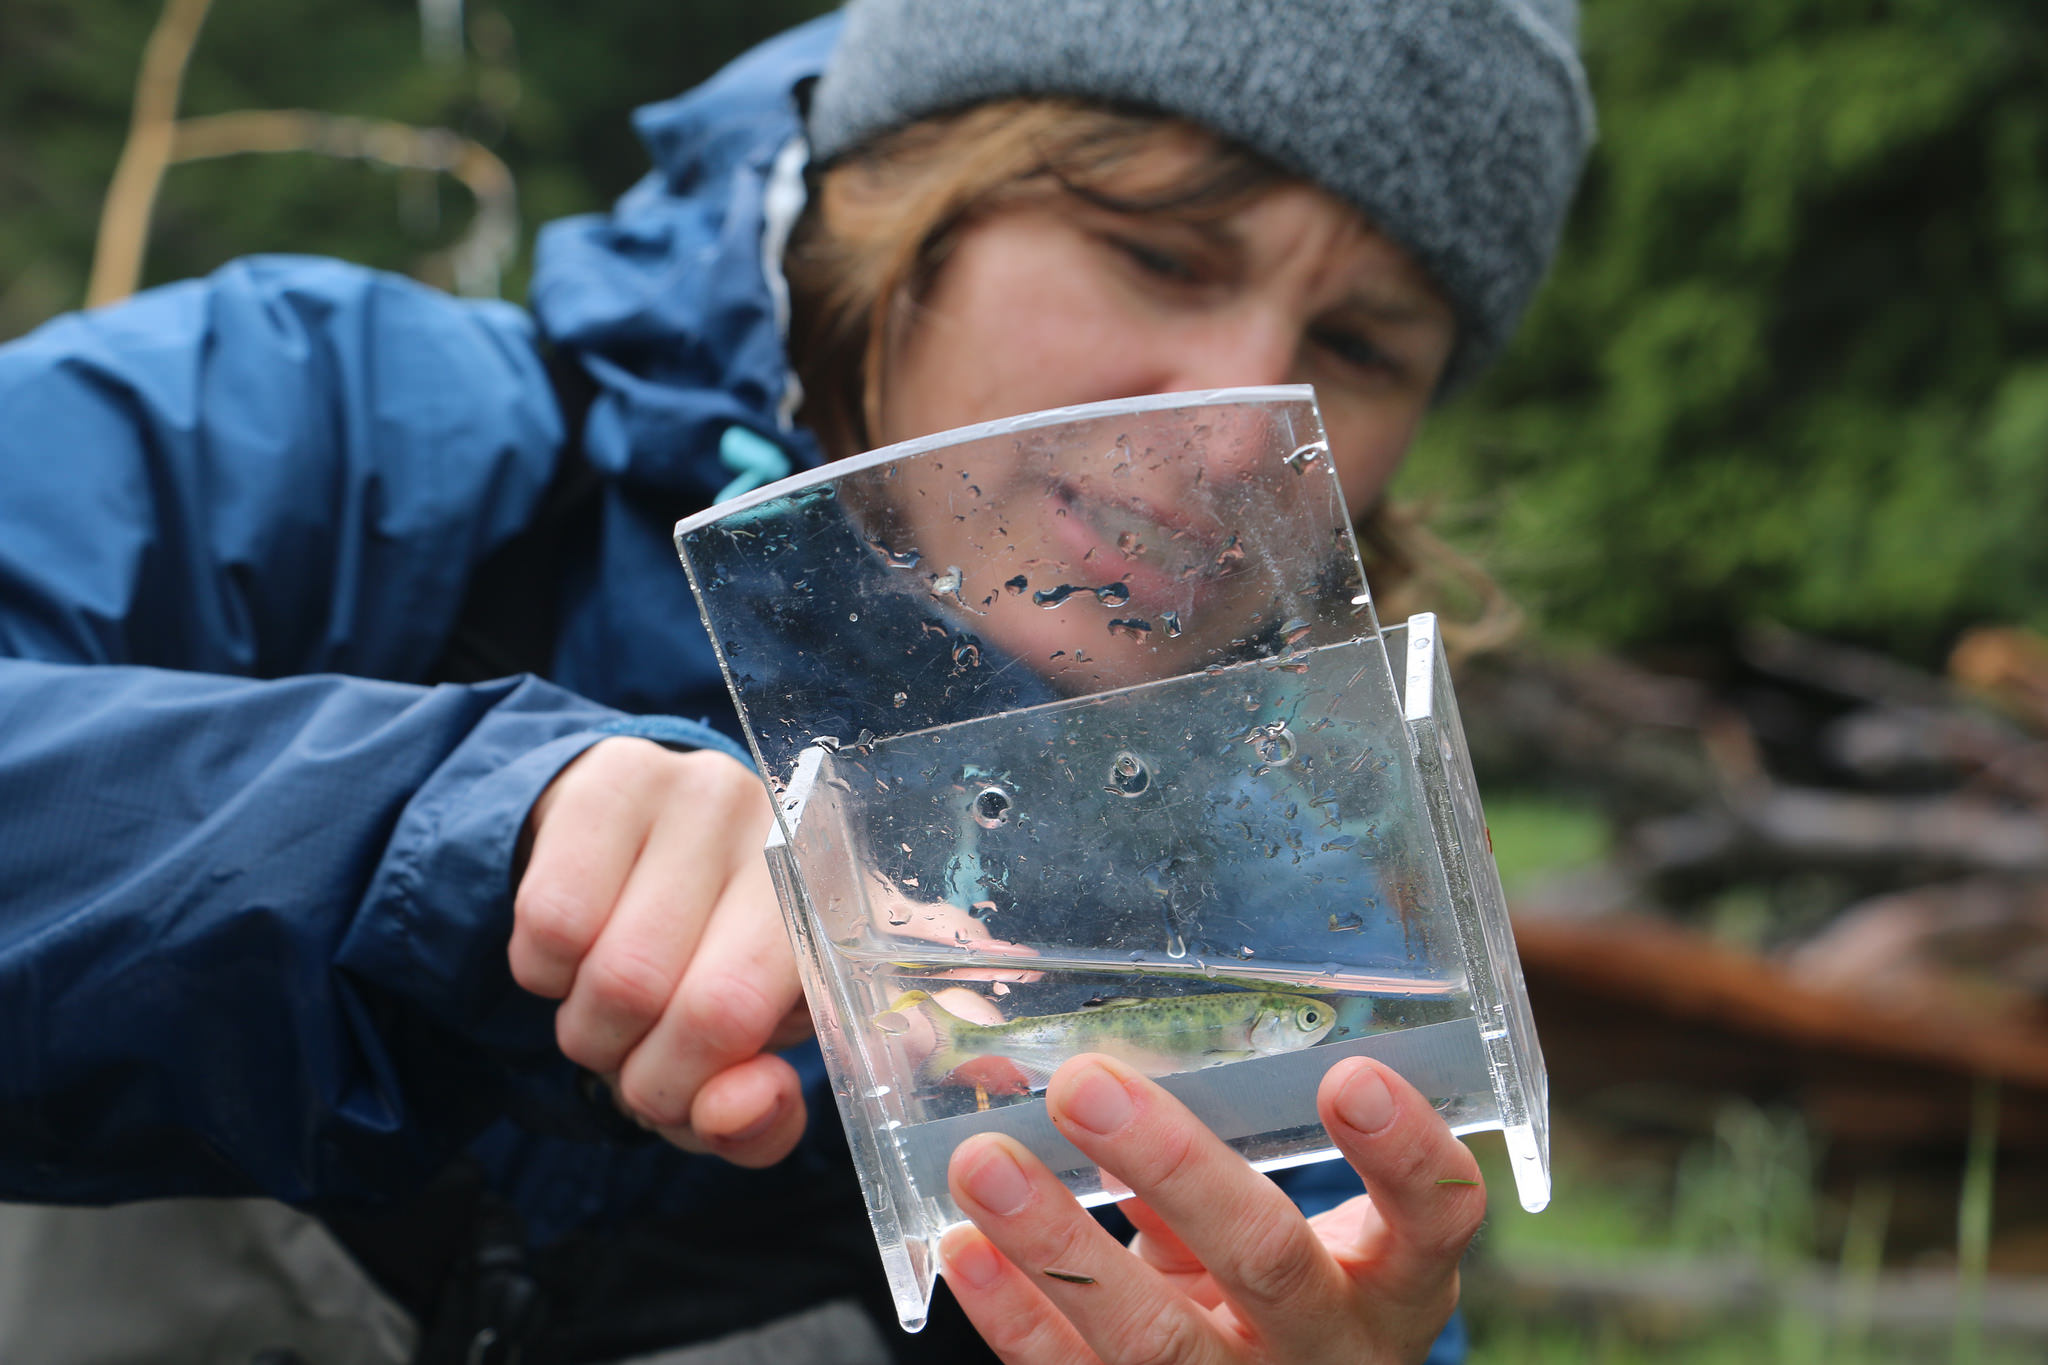 Smolt Assessment Aims to Understand Threats to WCVI Chinook